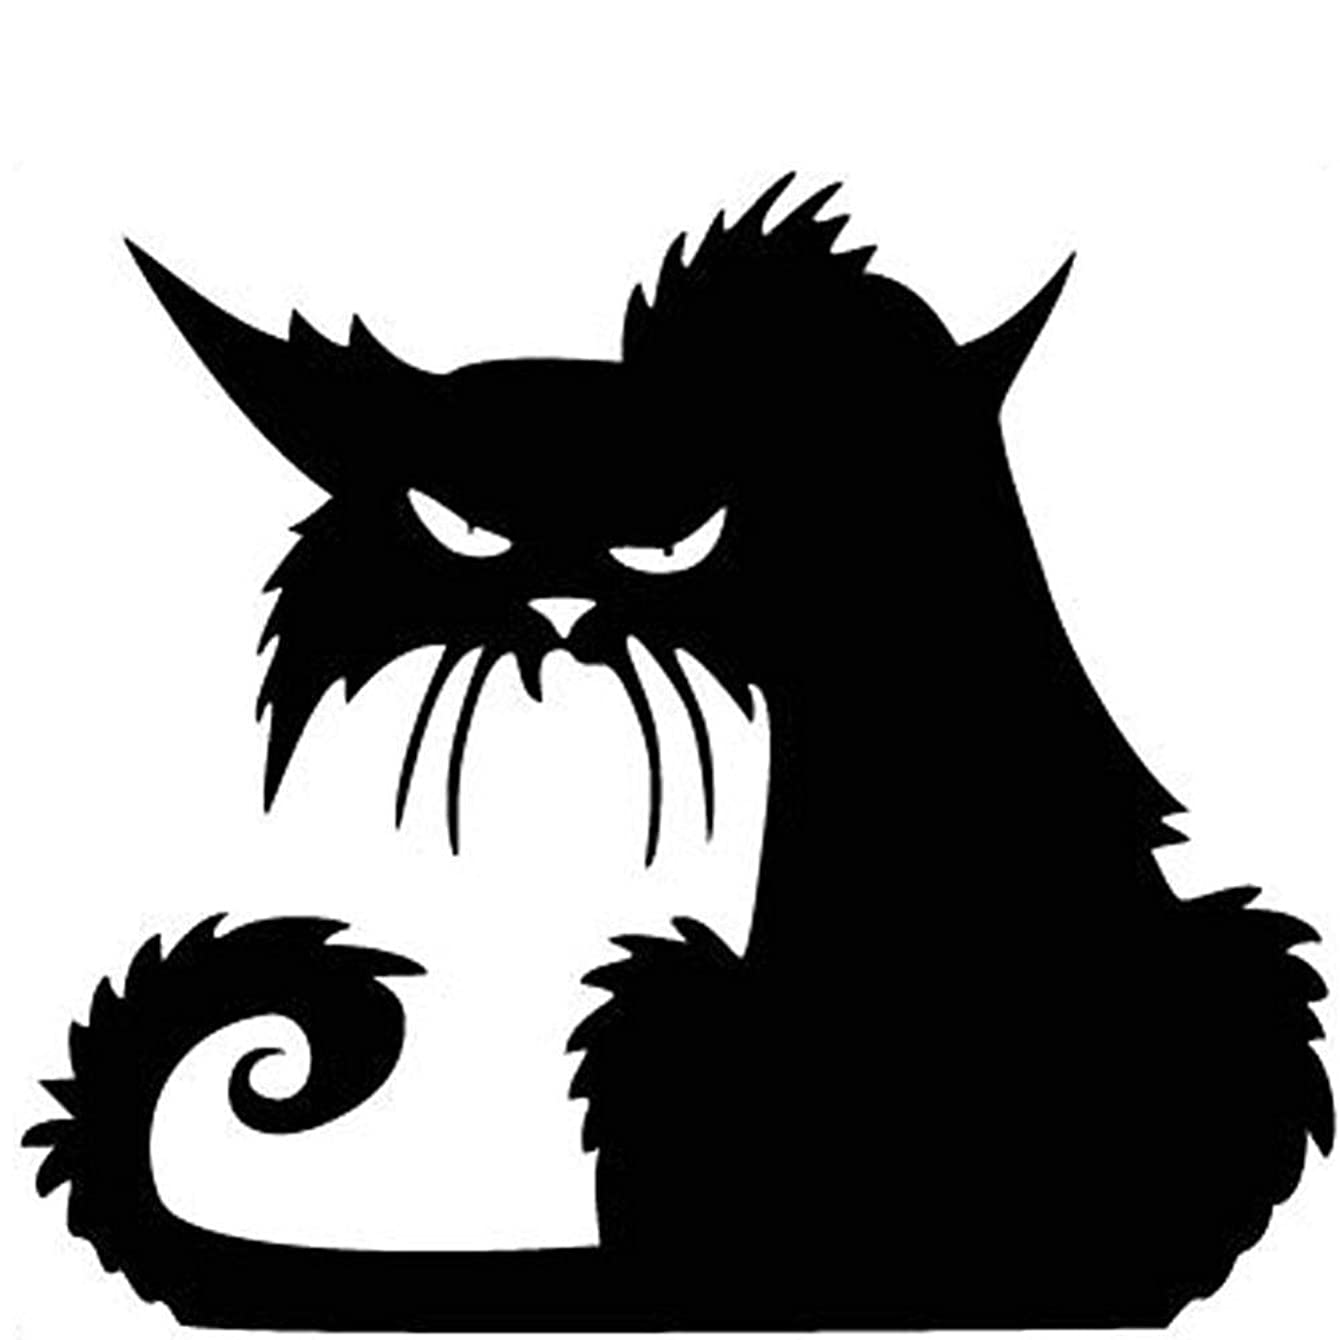 Fashionclubs Vinly Black Cat Removable Window Wall Sticker For Halloween Home Decoration,14.5*13.5cm